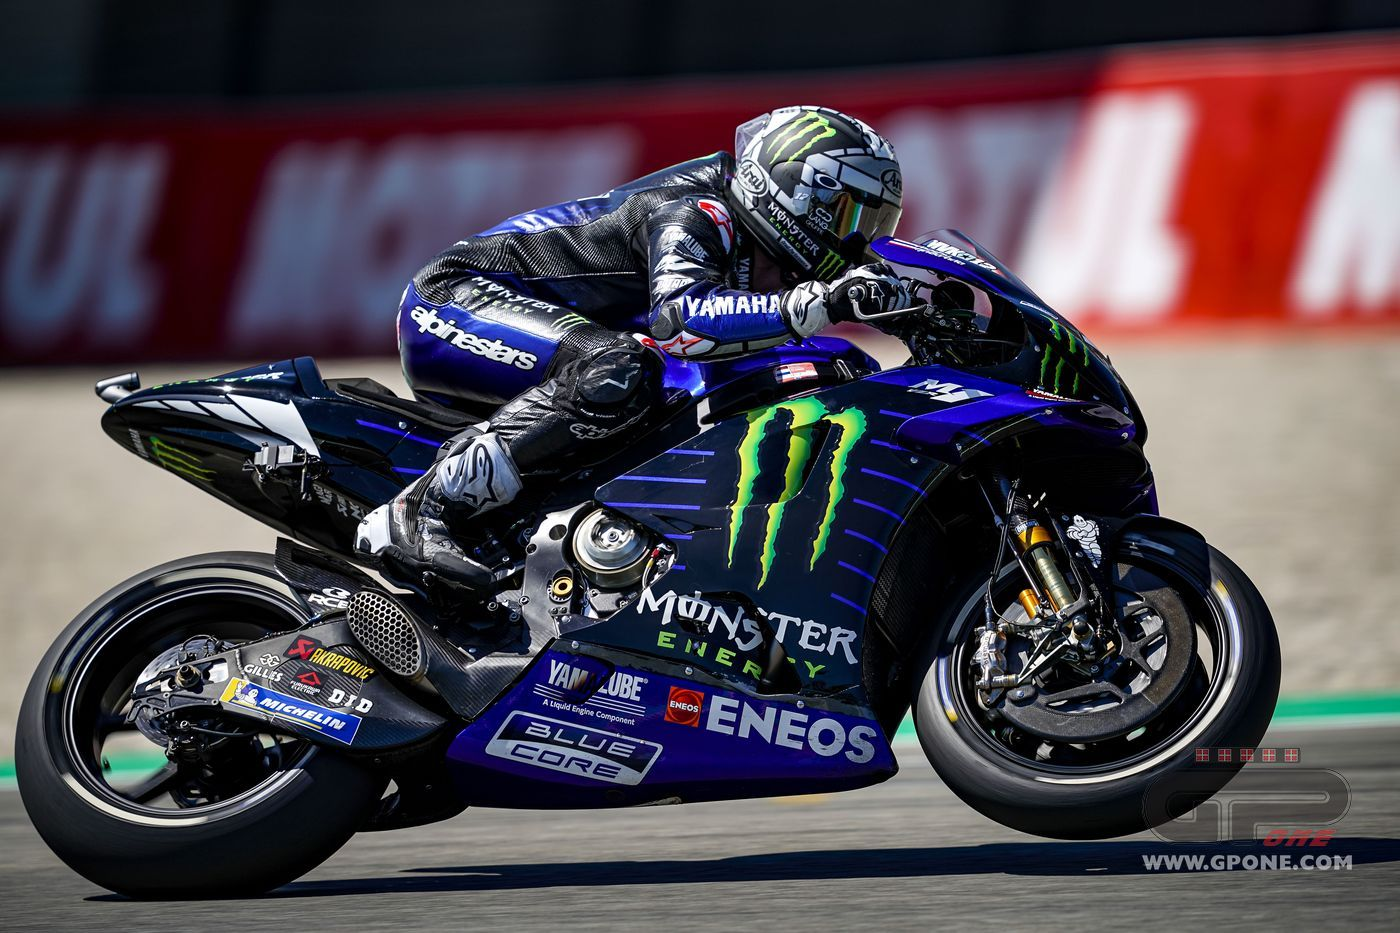 MotoGP, Vinales brings Yamaha back to the top, Rossi took a fall